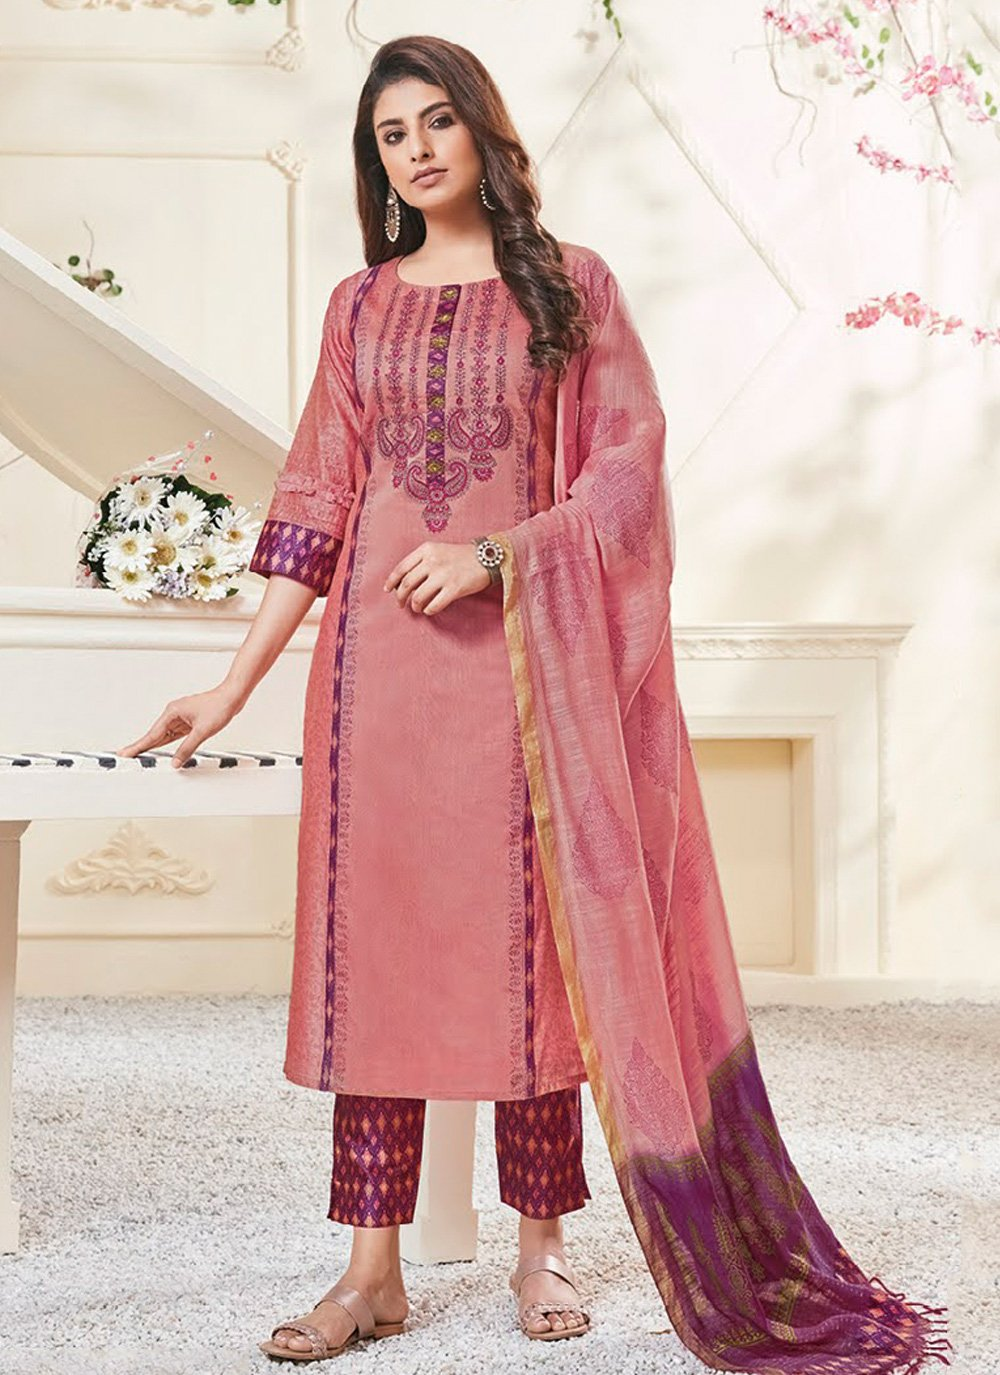 Polly Cotton Hot Pink Embroidered Pant Style Suit